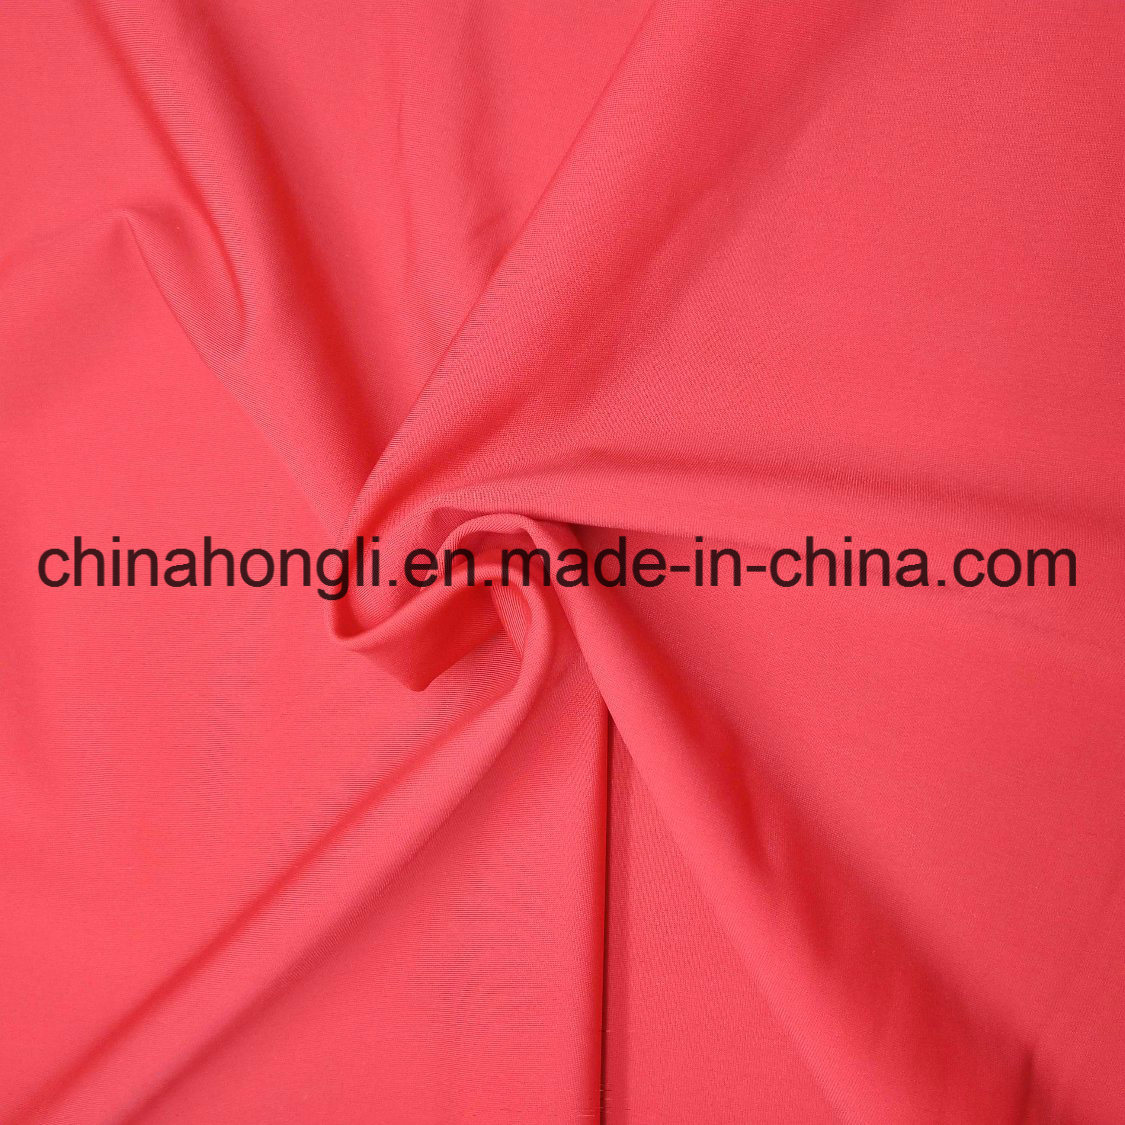 81569e6b9c5 Tricot Four Way Shining Lycra Single Jersey N/Sp for Swimming Wear with Good  Stretch